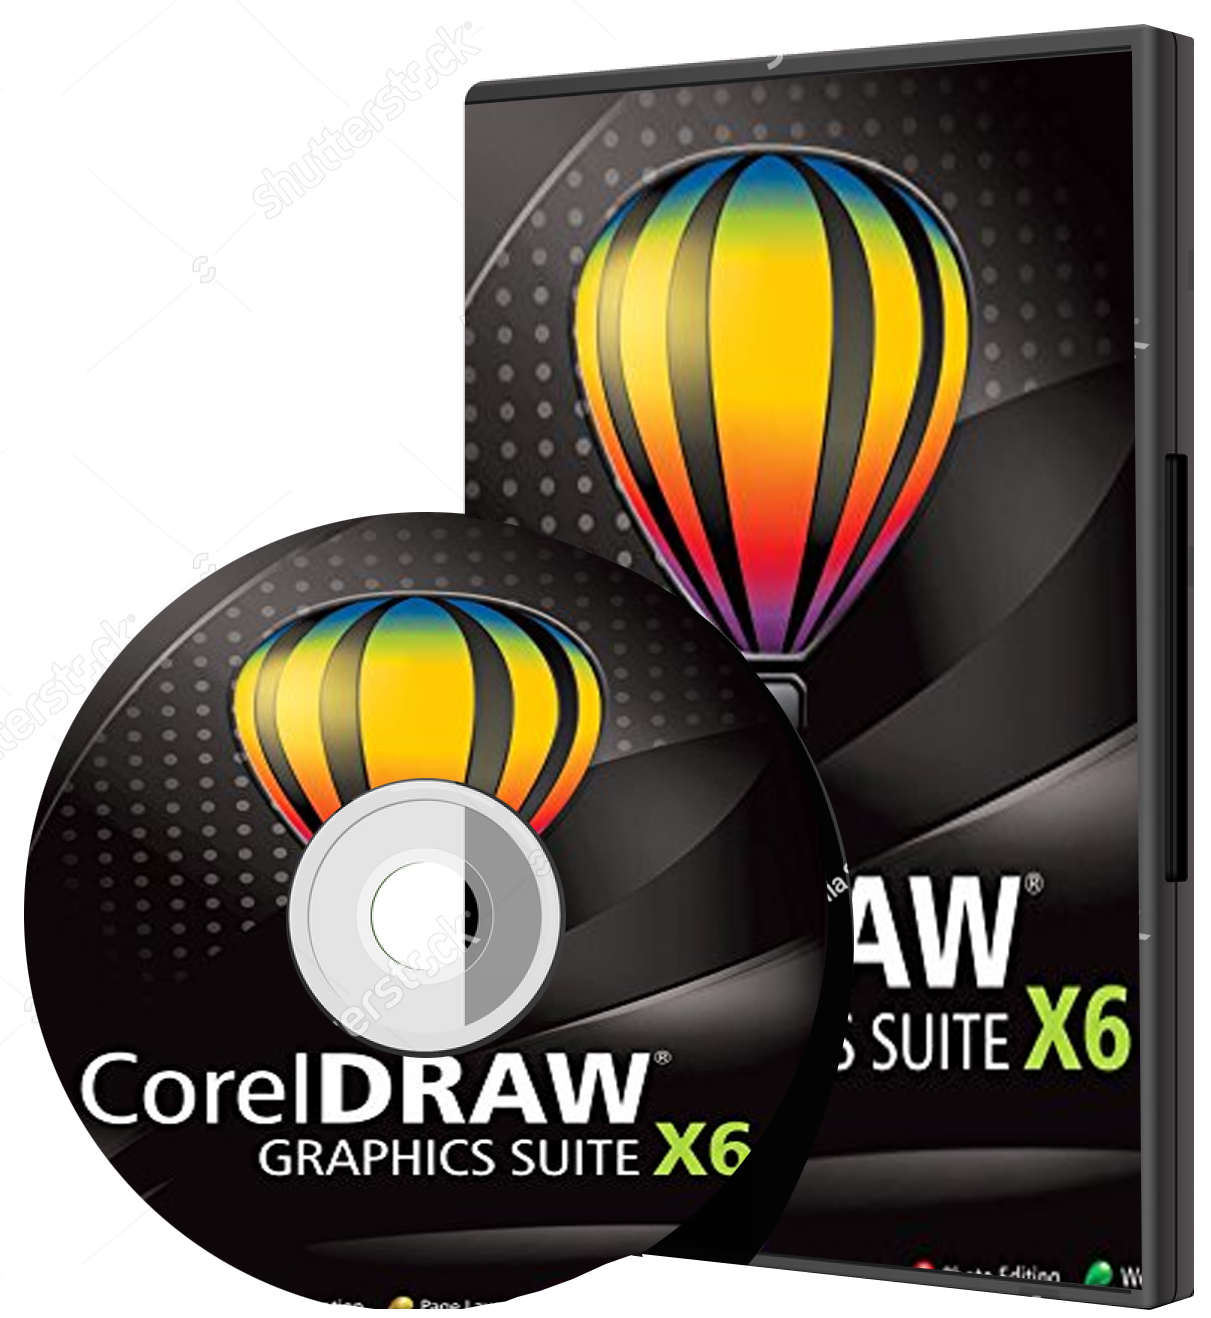 coreldraw free download windows 7